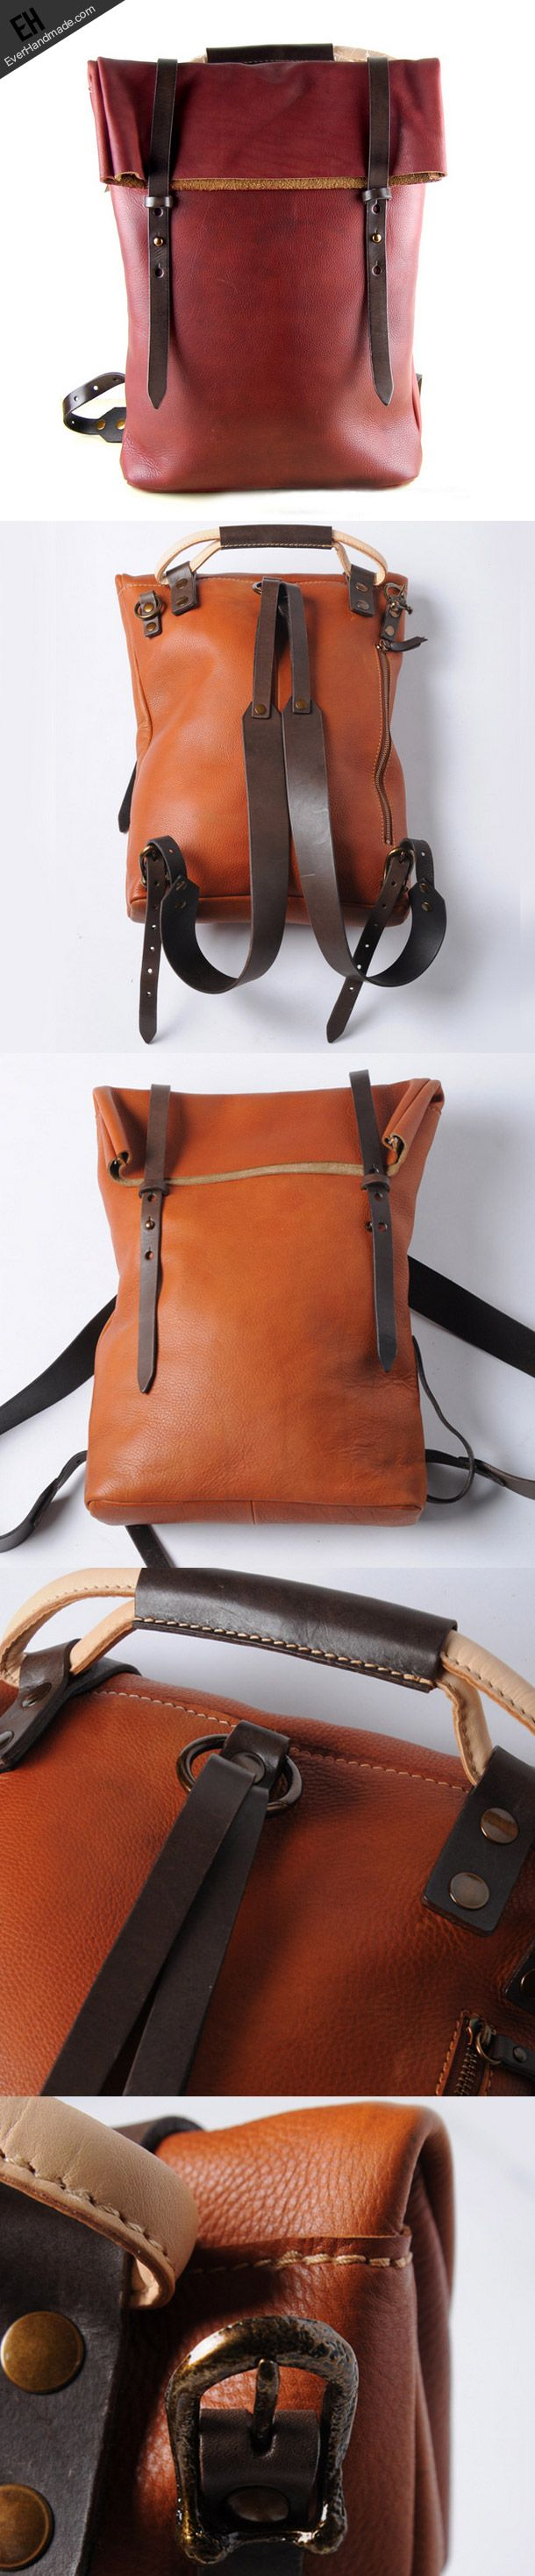 Handmade leather Backpack For men                                                                                                                                                      More